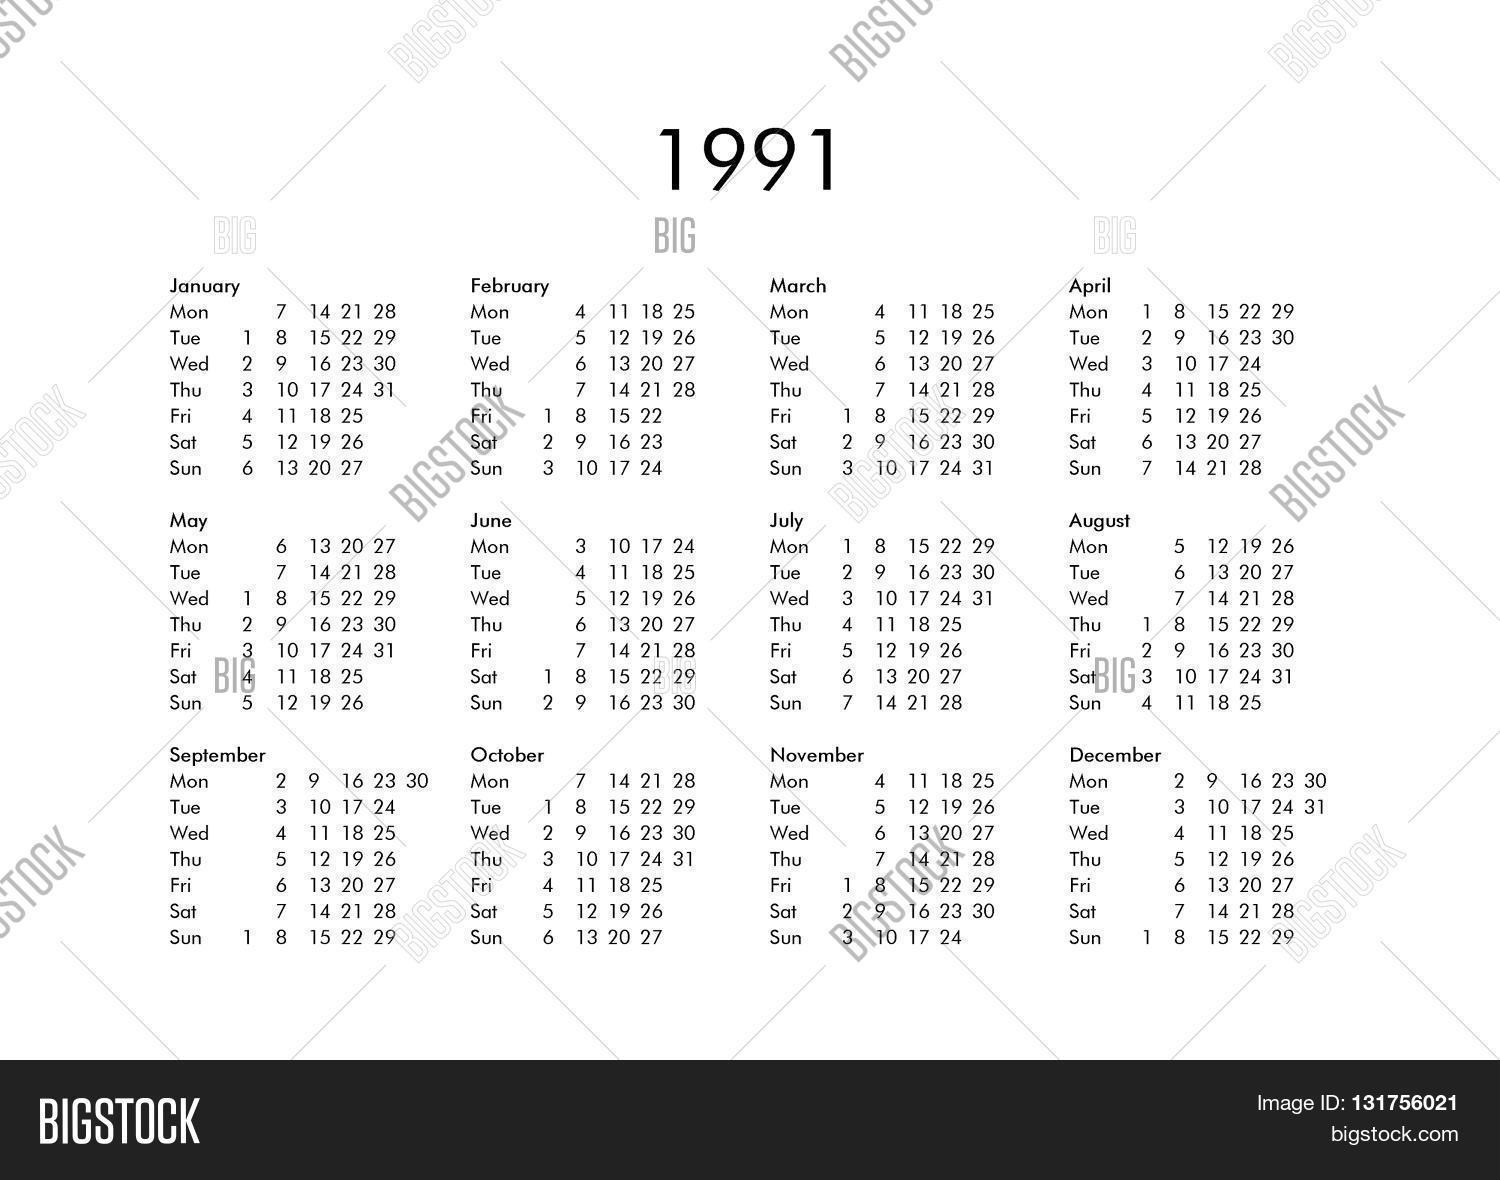 Calendar Year 1991 Image & Photo (Free Trial) | Bigstock pertaining to 1991 Calendar Year